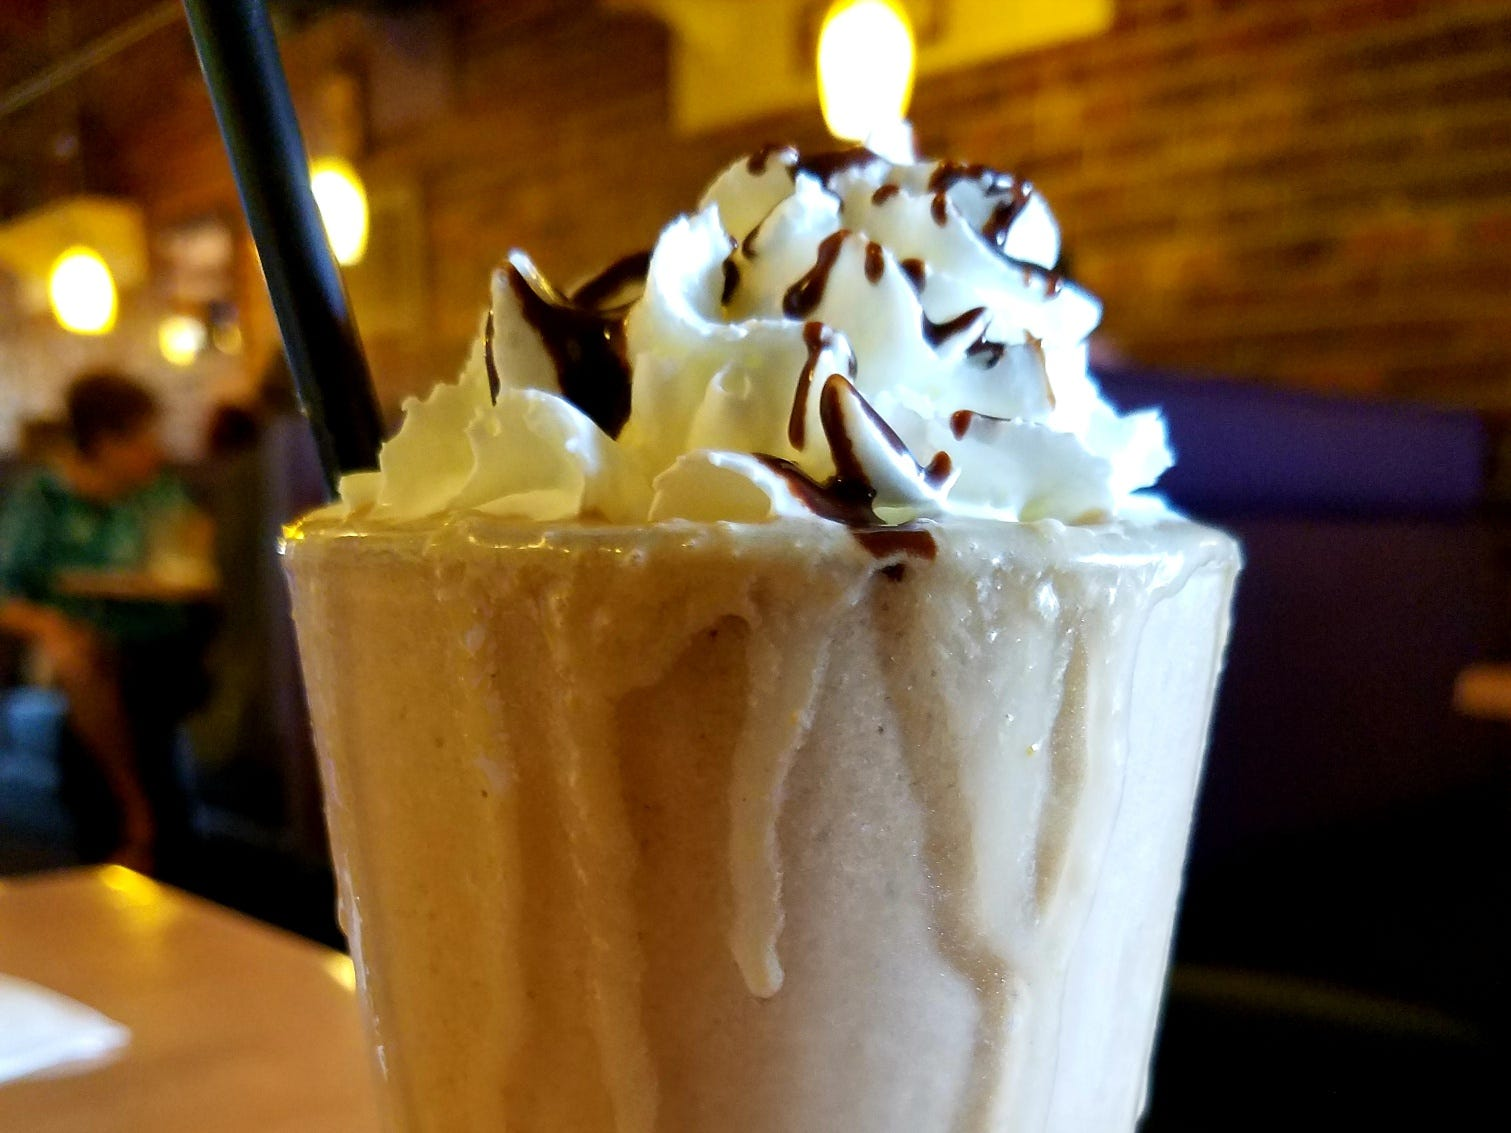 Berry Fresh Cafe's chocolate peanut butter banana smoothie made with low-fat yogurt.